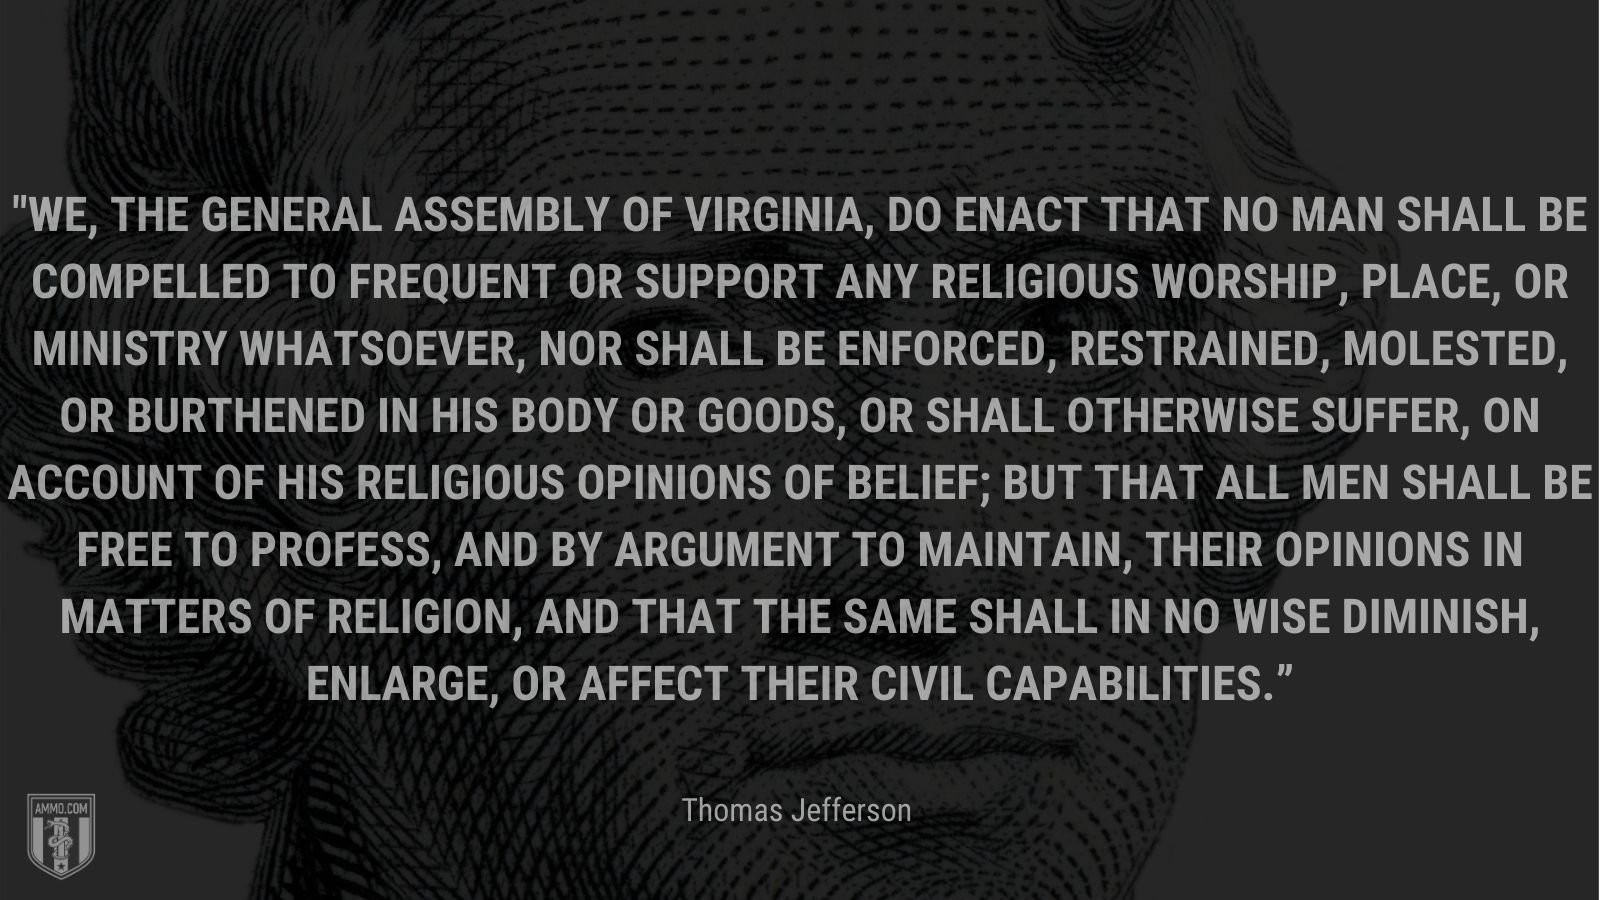 """""""We, the General Assembly of Virginia, do enact that no man shall be compelled to frequent or support any religious worship, place, or ministry whatsoever, nor shall be enforced, restrained, molested, or burthened in his body or goods, or shall otherwise suffer, on account of his religious opinions of belief; but that all men shall be free to profess, and by argument to maintain, their opinions in matters of religion, and that the same shall in no wise diminish, enlarge, or affect their civil capabilities."""" -Thomas Jefferson"""